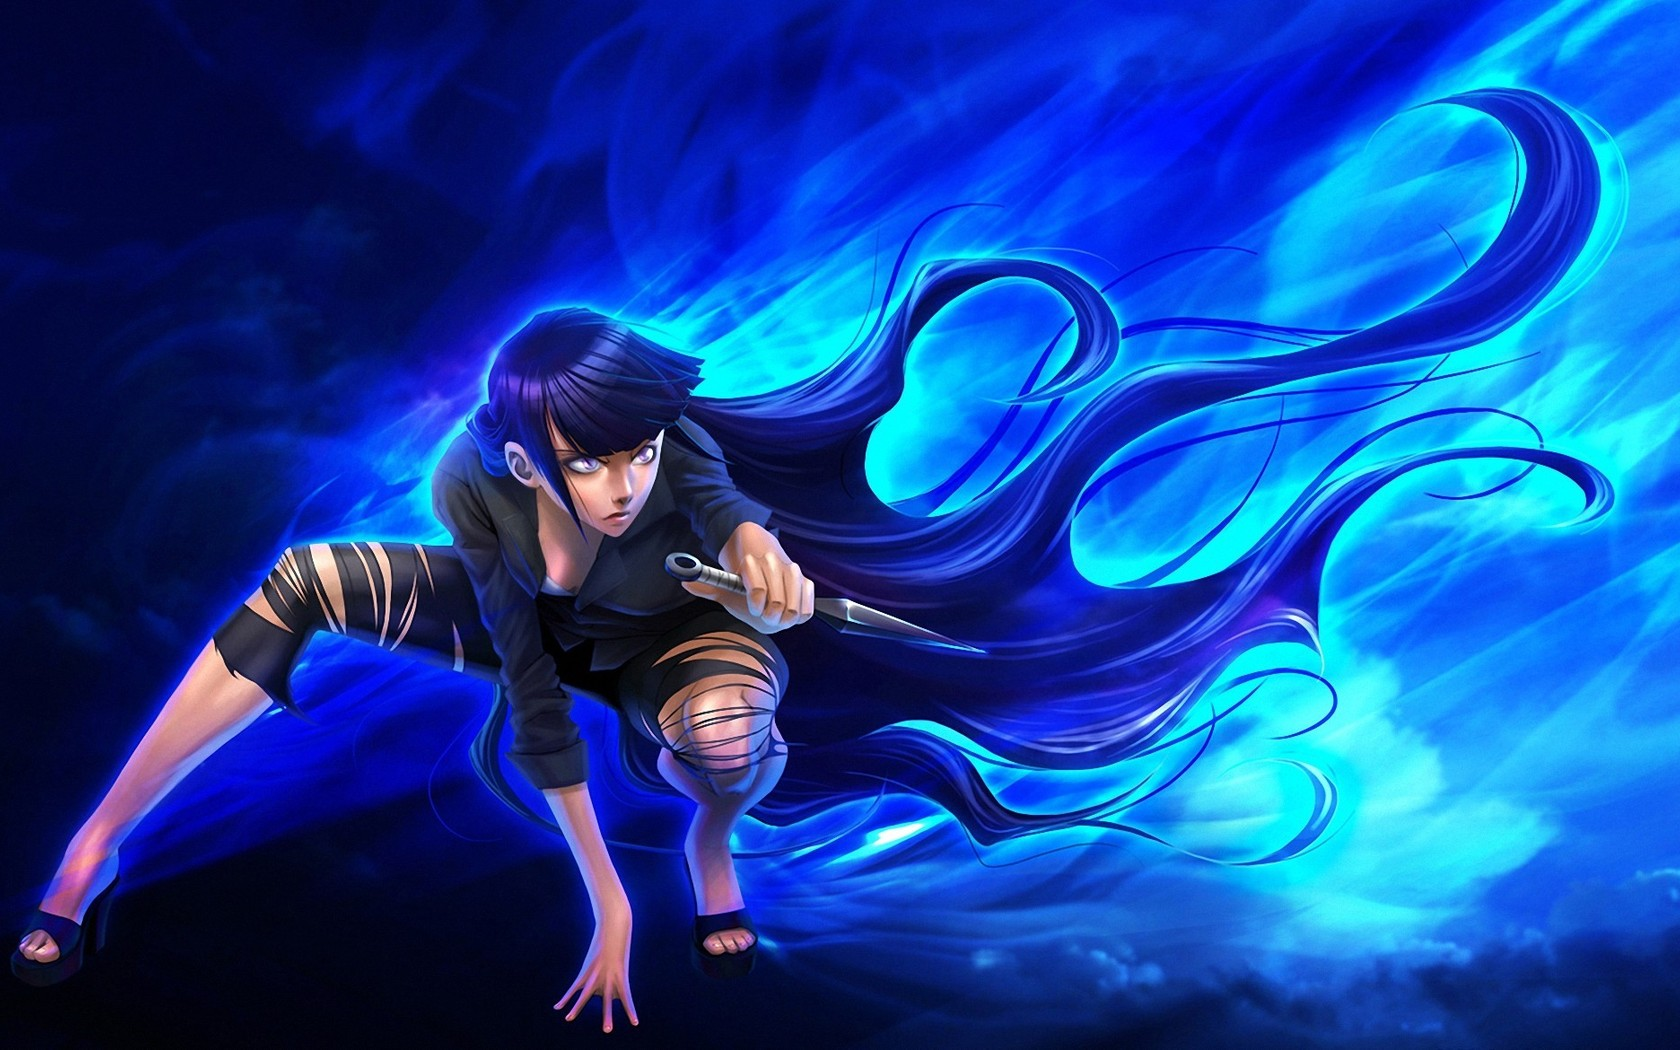 Naruto Wallpaper and Background Image | 1680x1050 | ID ...